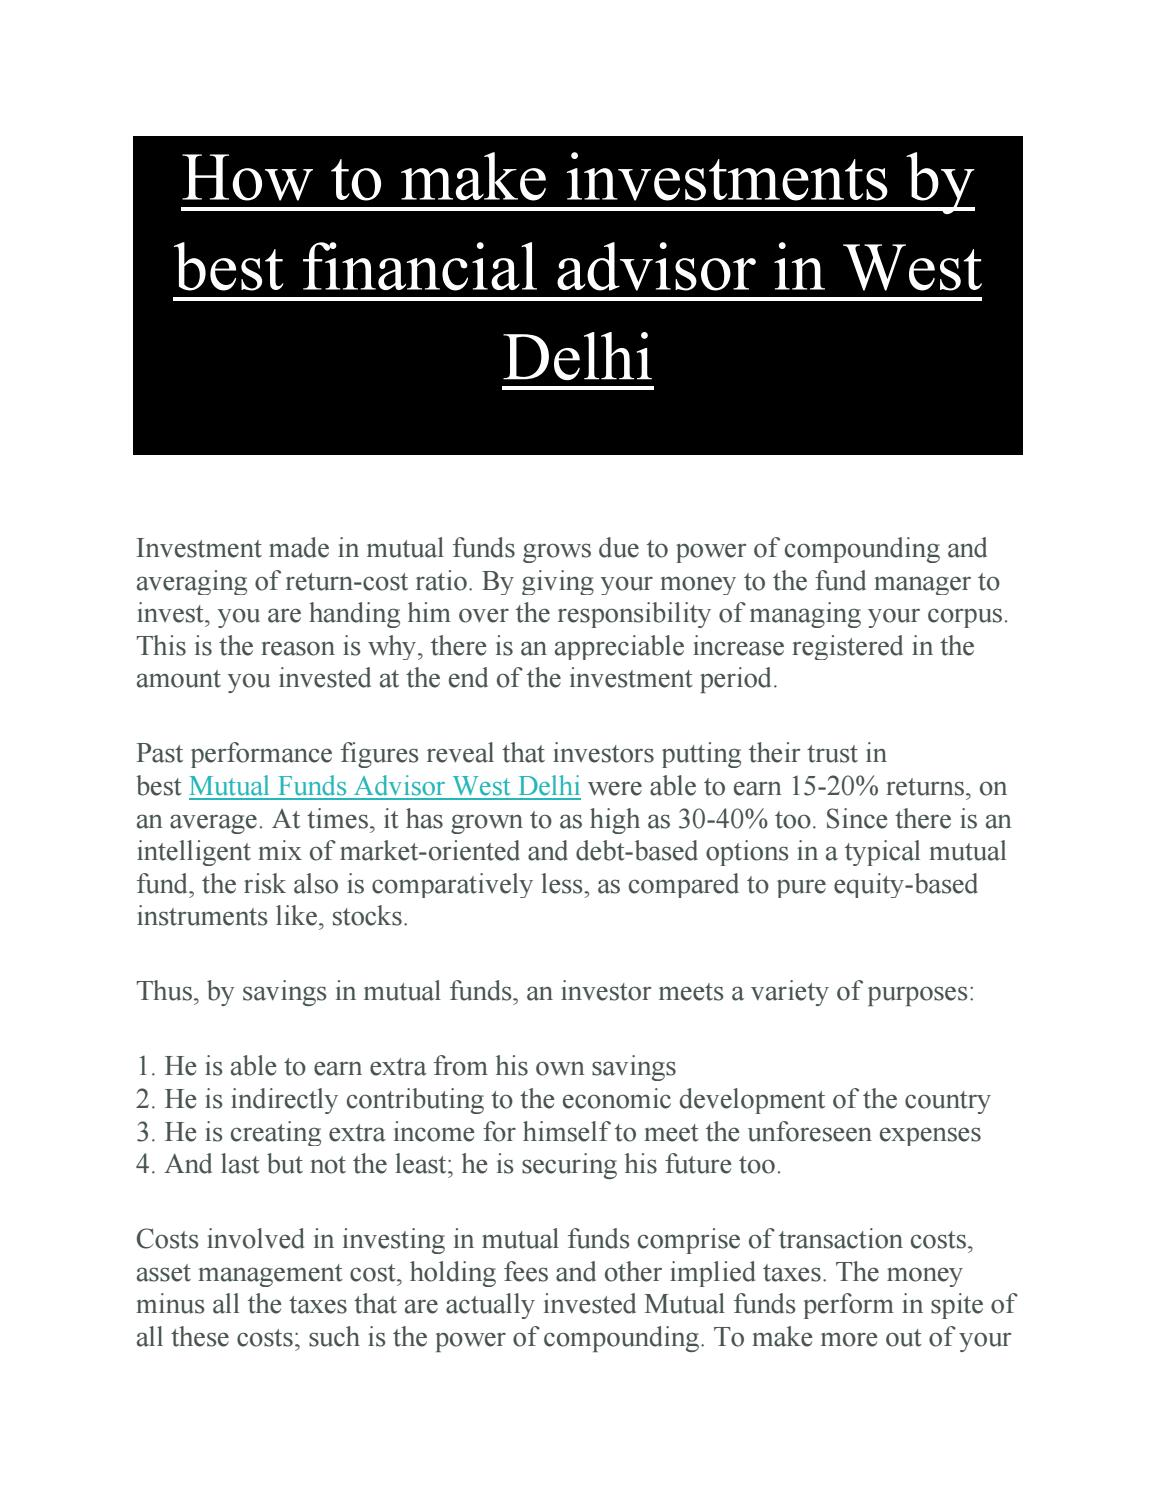 How To Make Investments By Best Financial Advisor In West Delhi By Udta Paisa Issuu